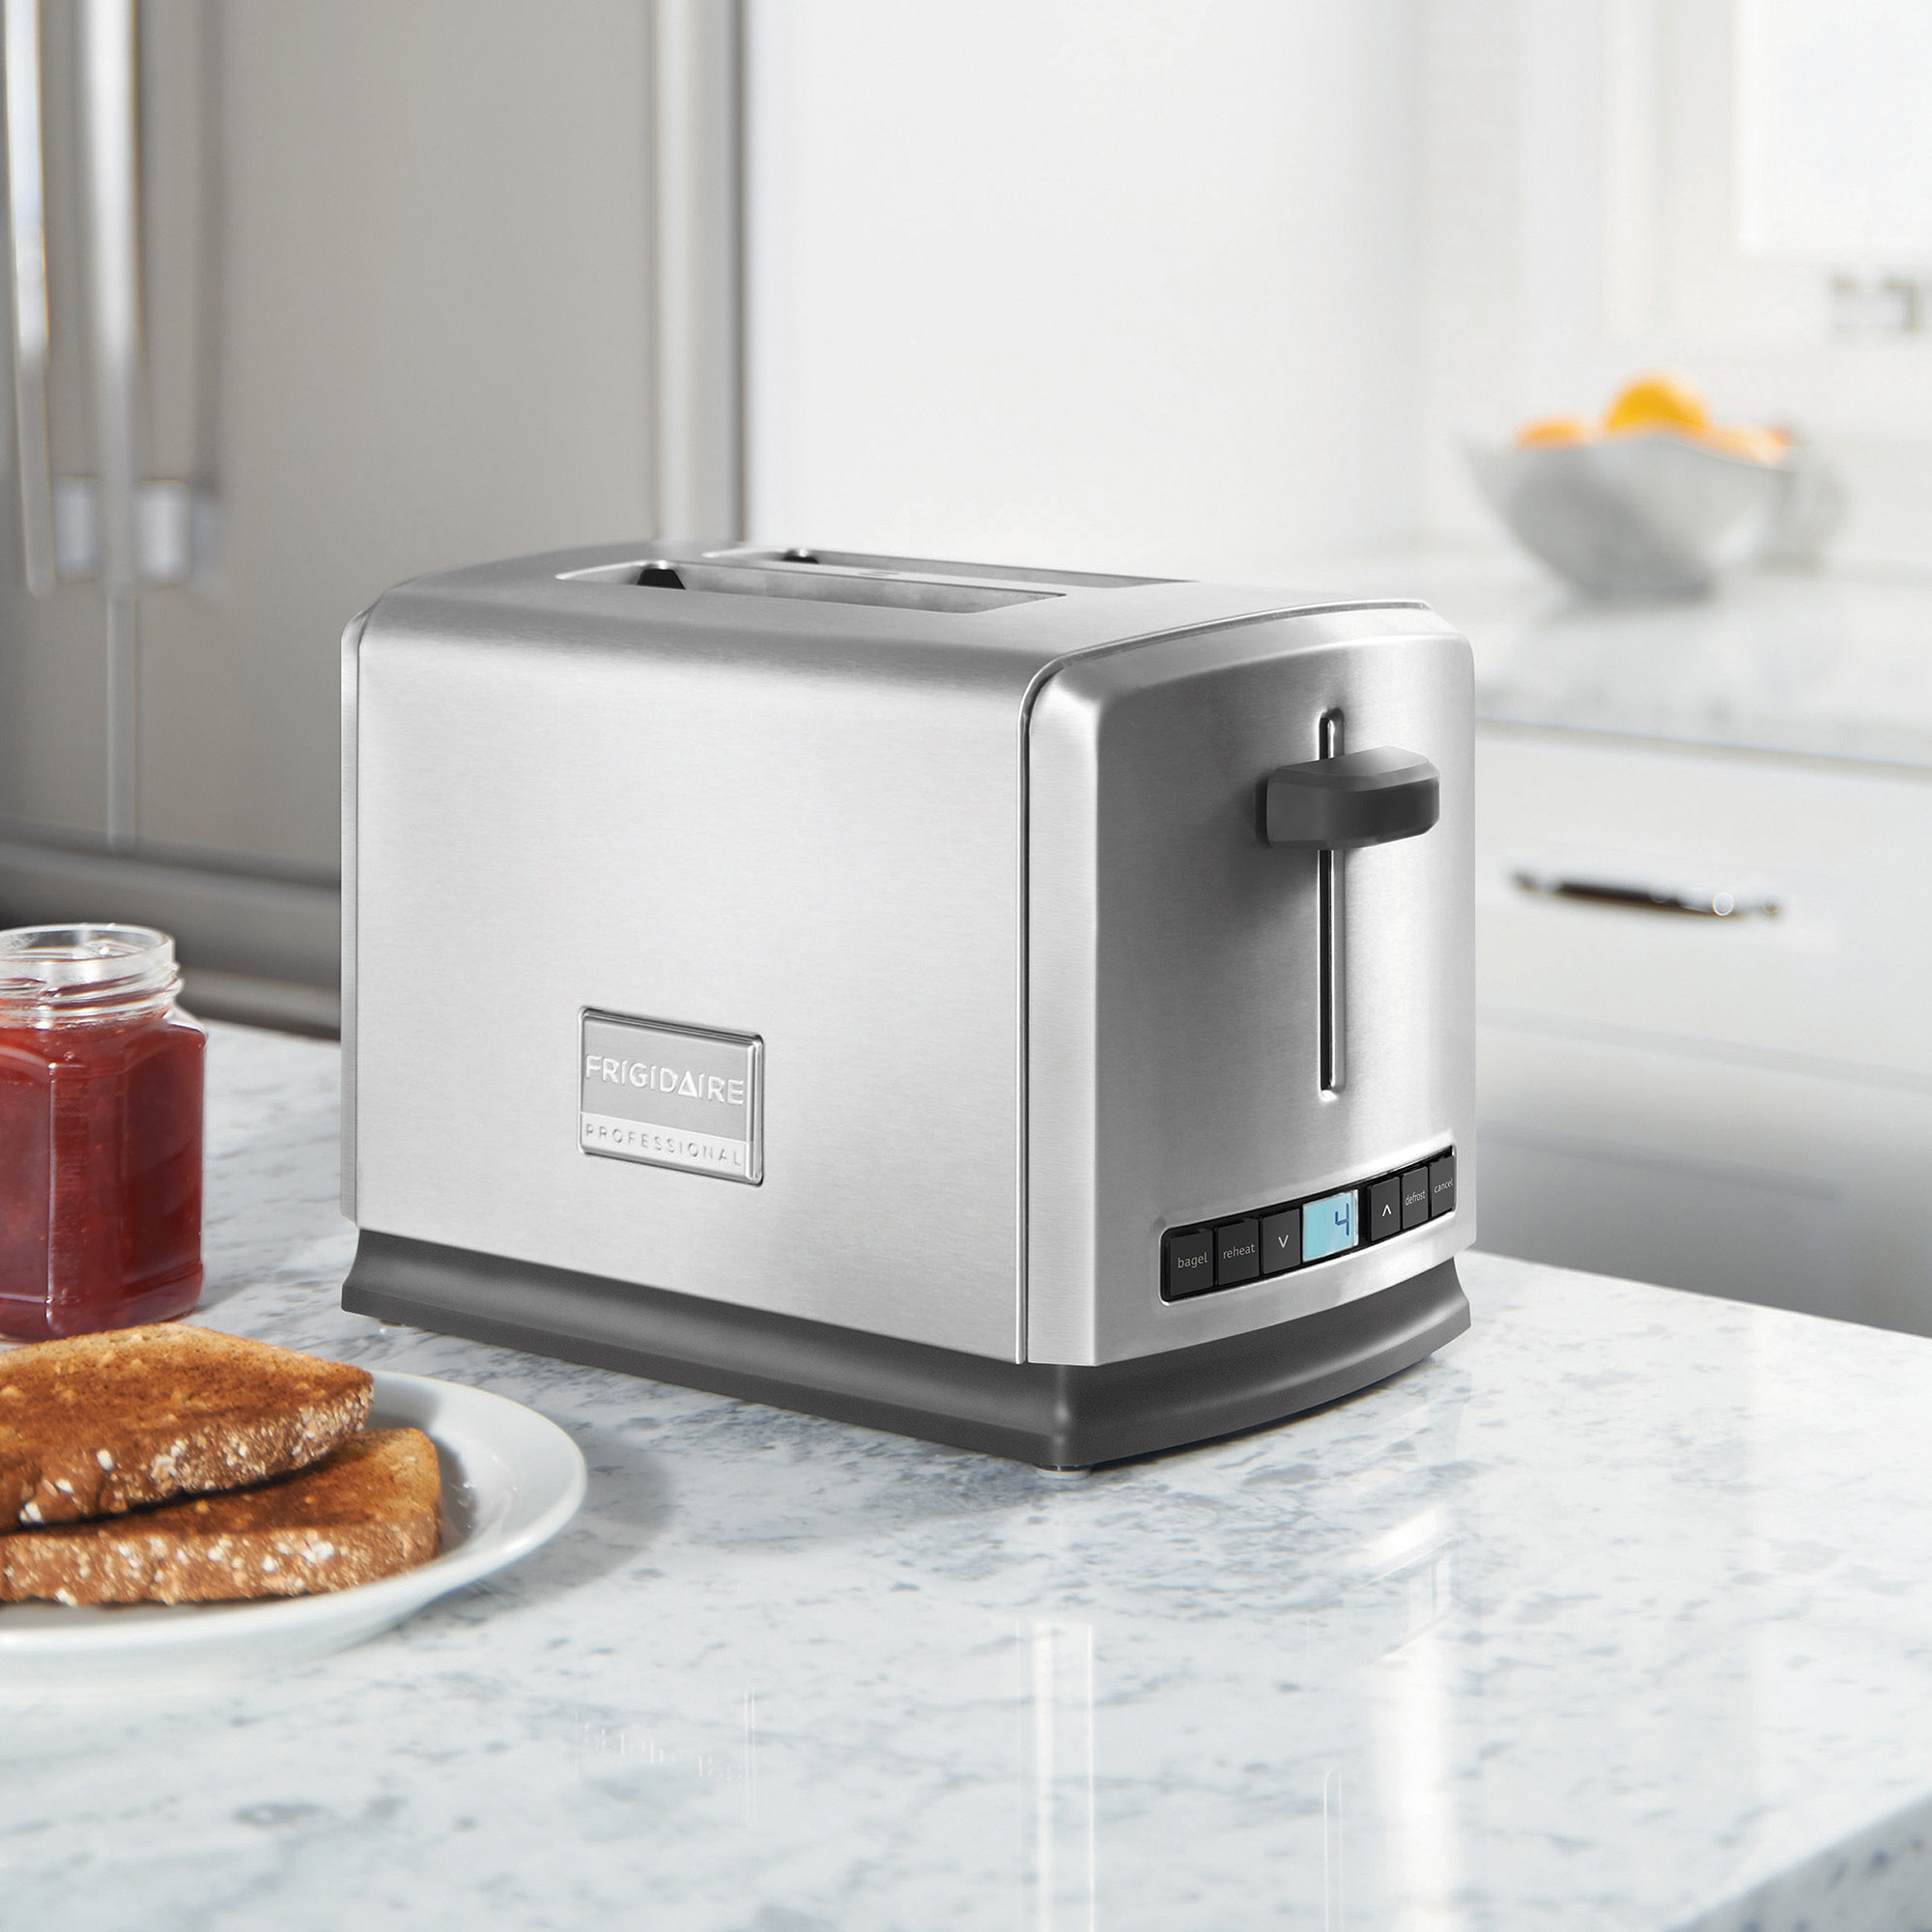 Frigidaire Professional 2-Slice Toaster, Stainless Steel